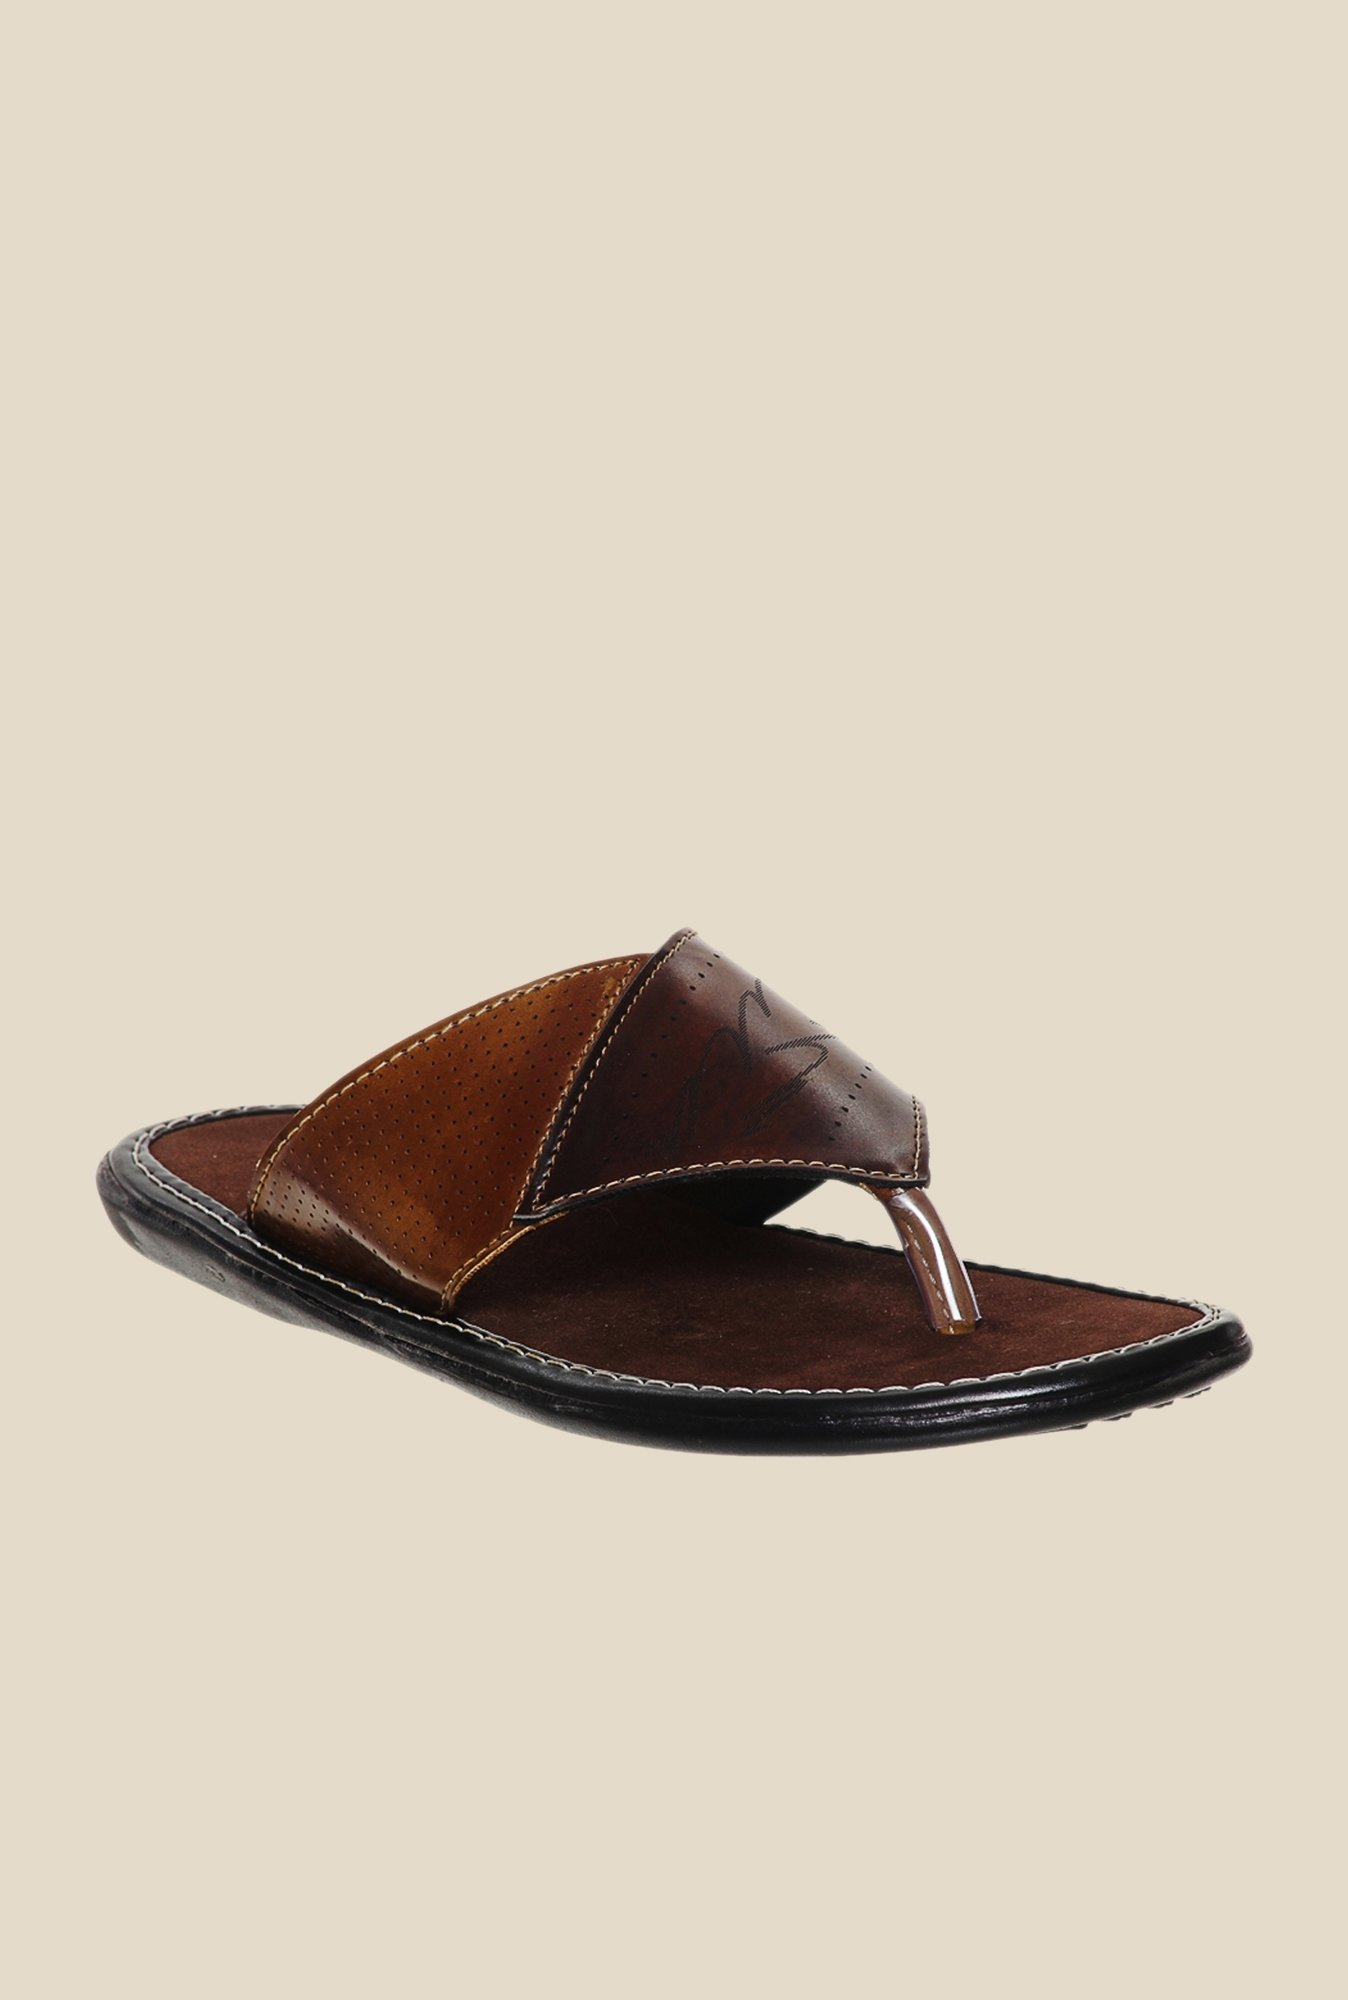 Bruno Manetti Brown Thong Sandals